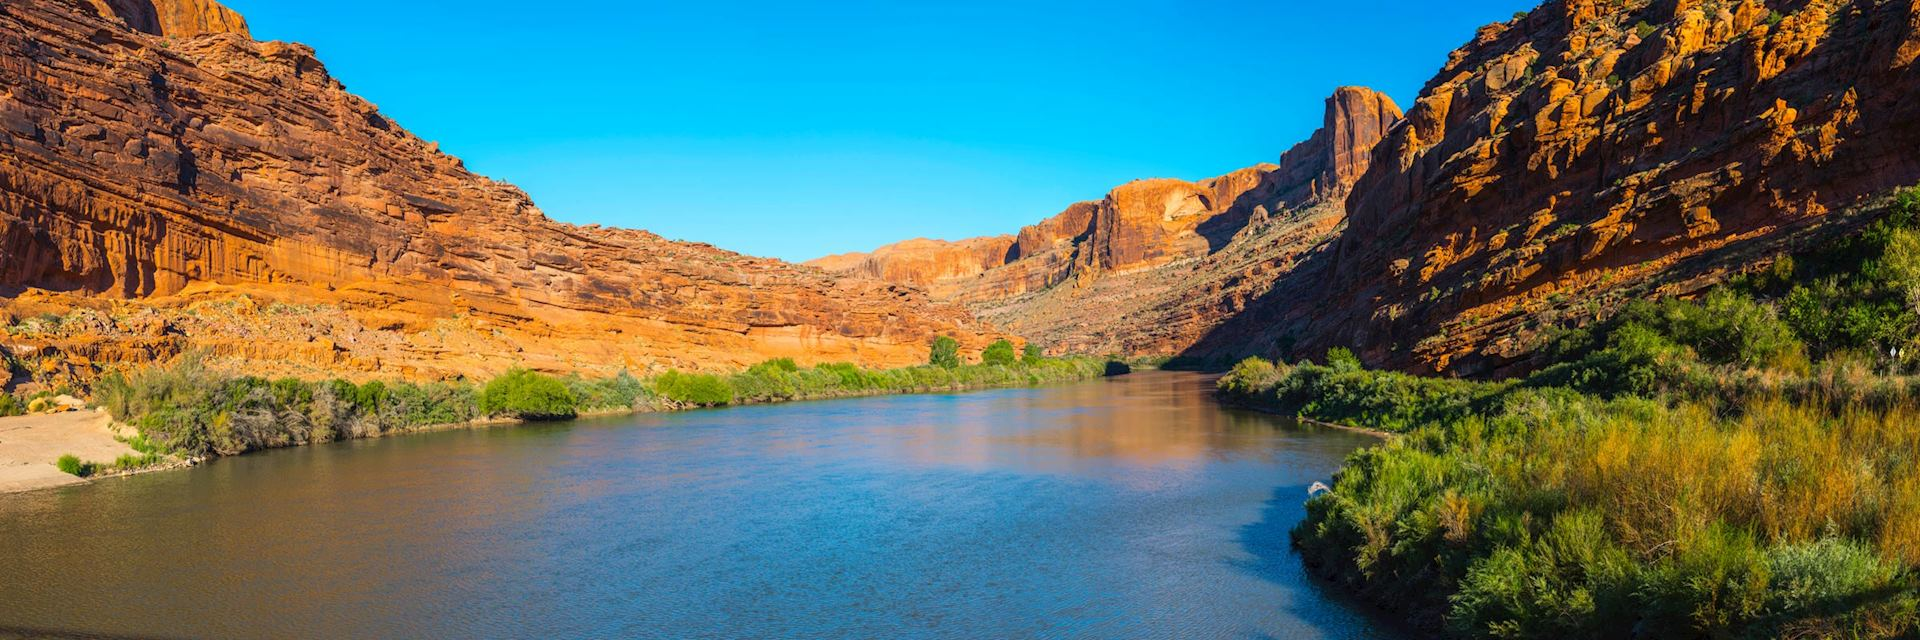 Colorado River, Moab